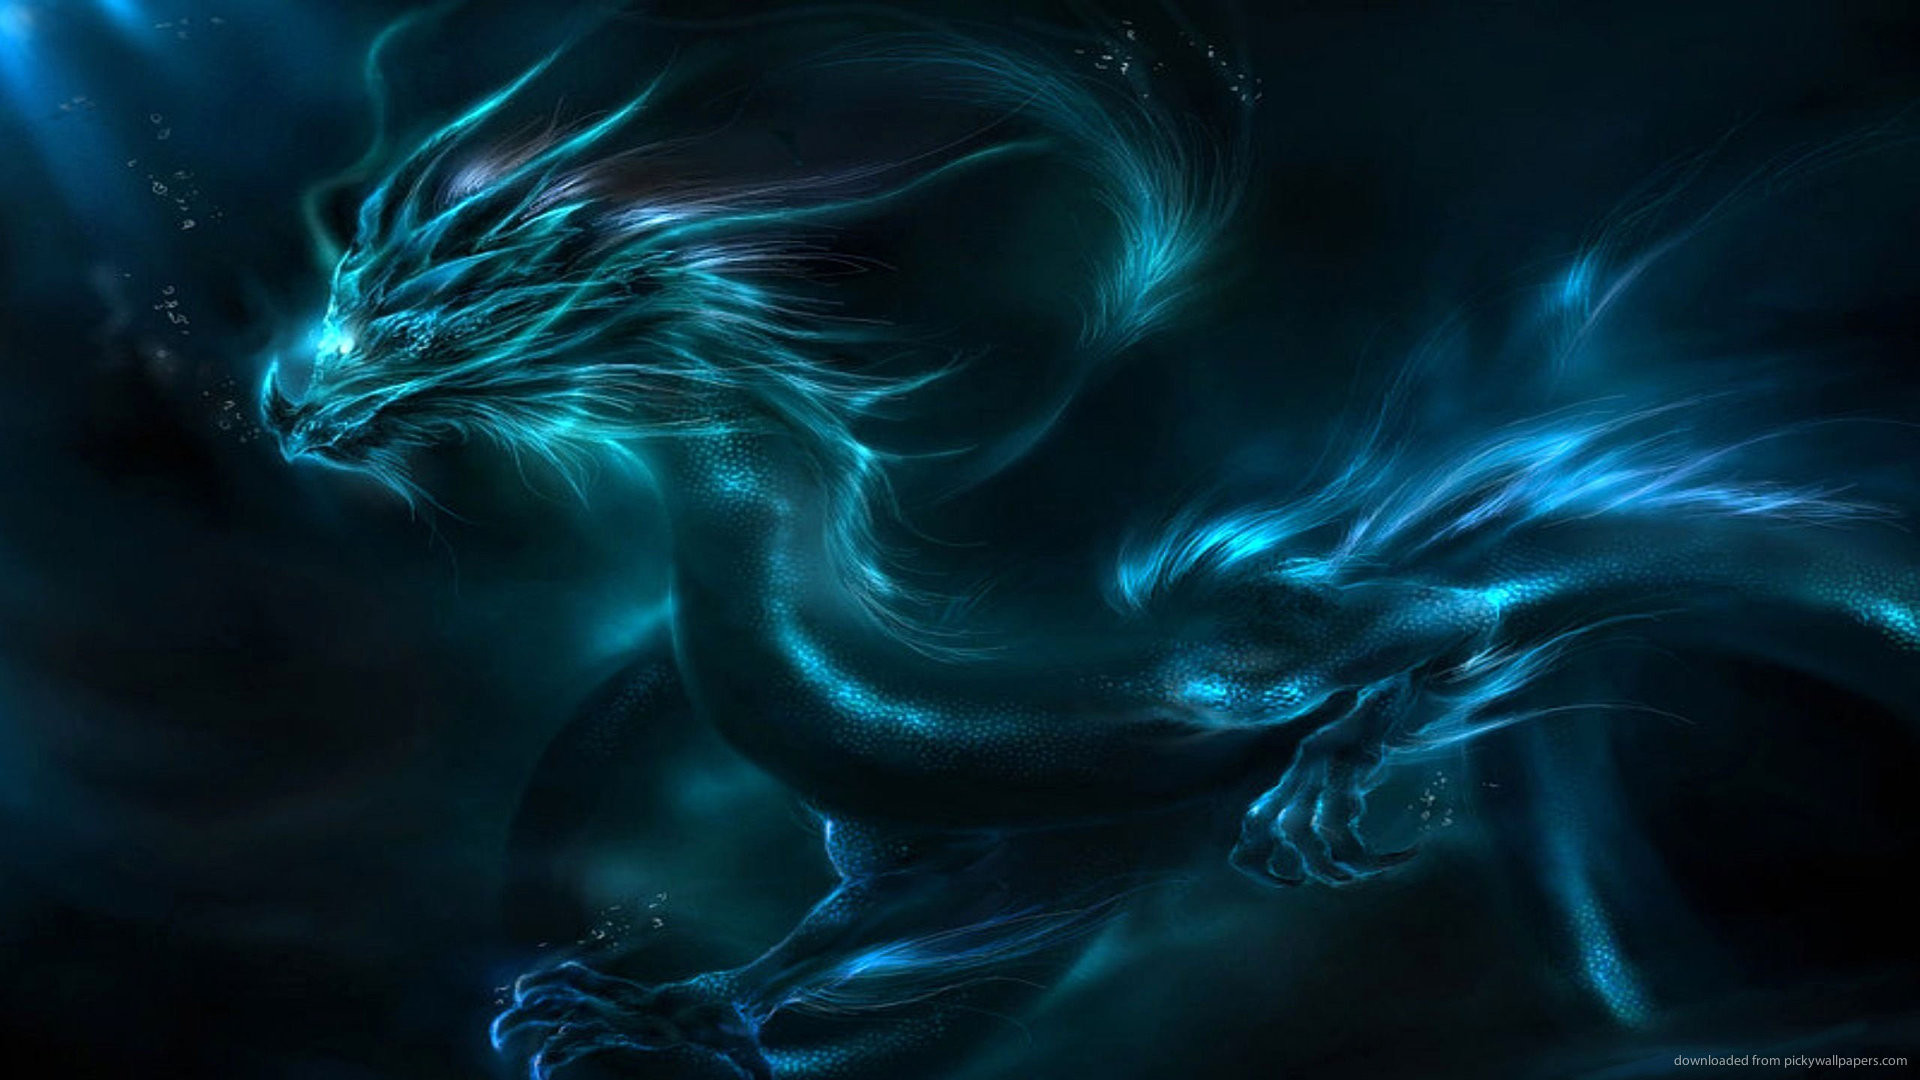 wallpaper.pickywallpapers.com/1920×1080/blue-dragon.jpg